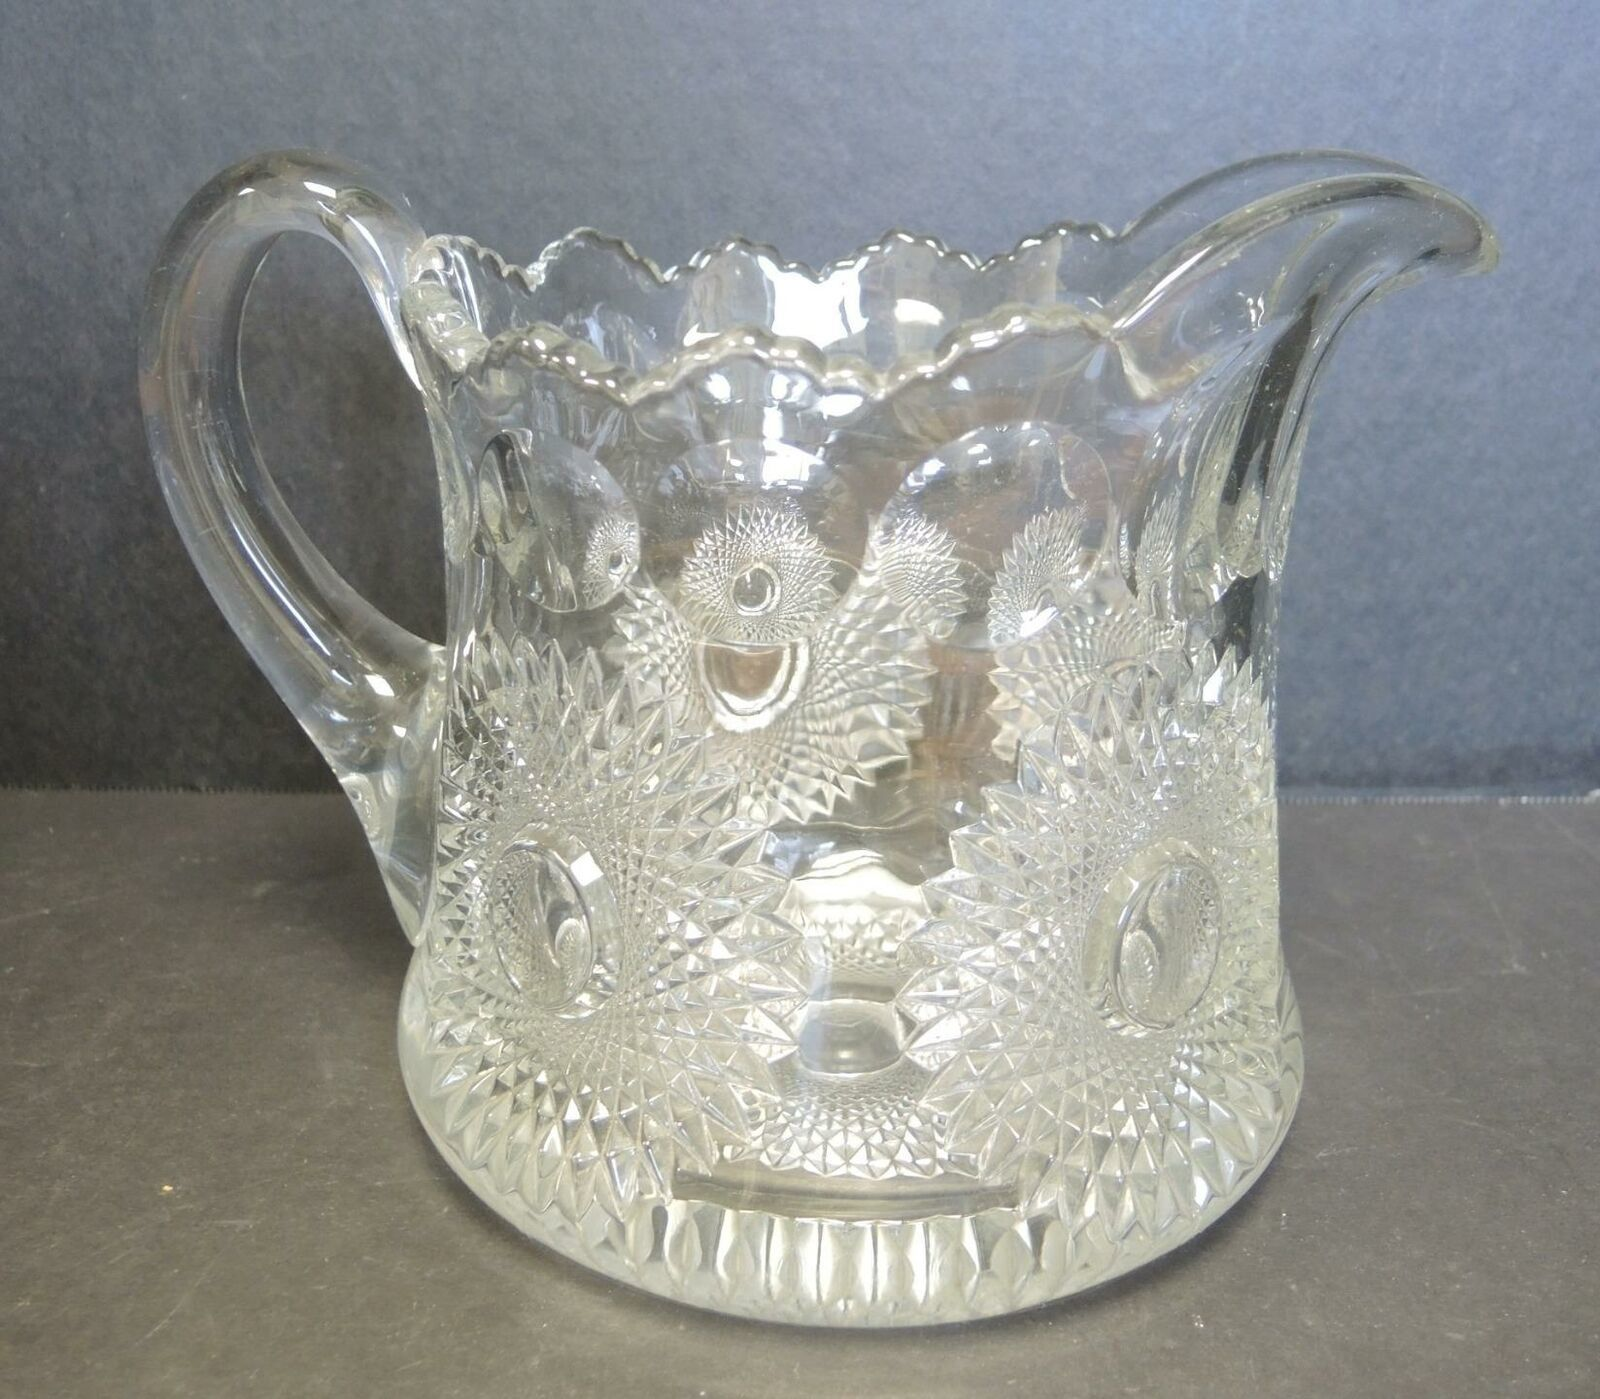 Primary image for 1910 Heisey 80 Oz Jug - Sunburst Pattern